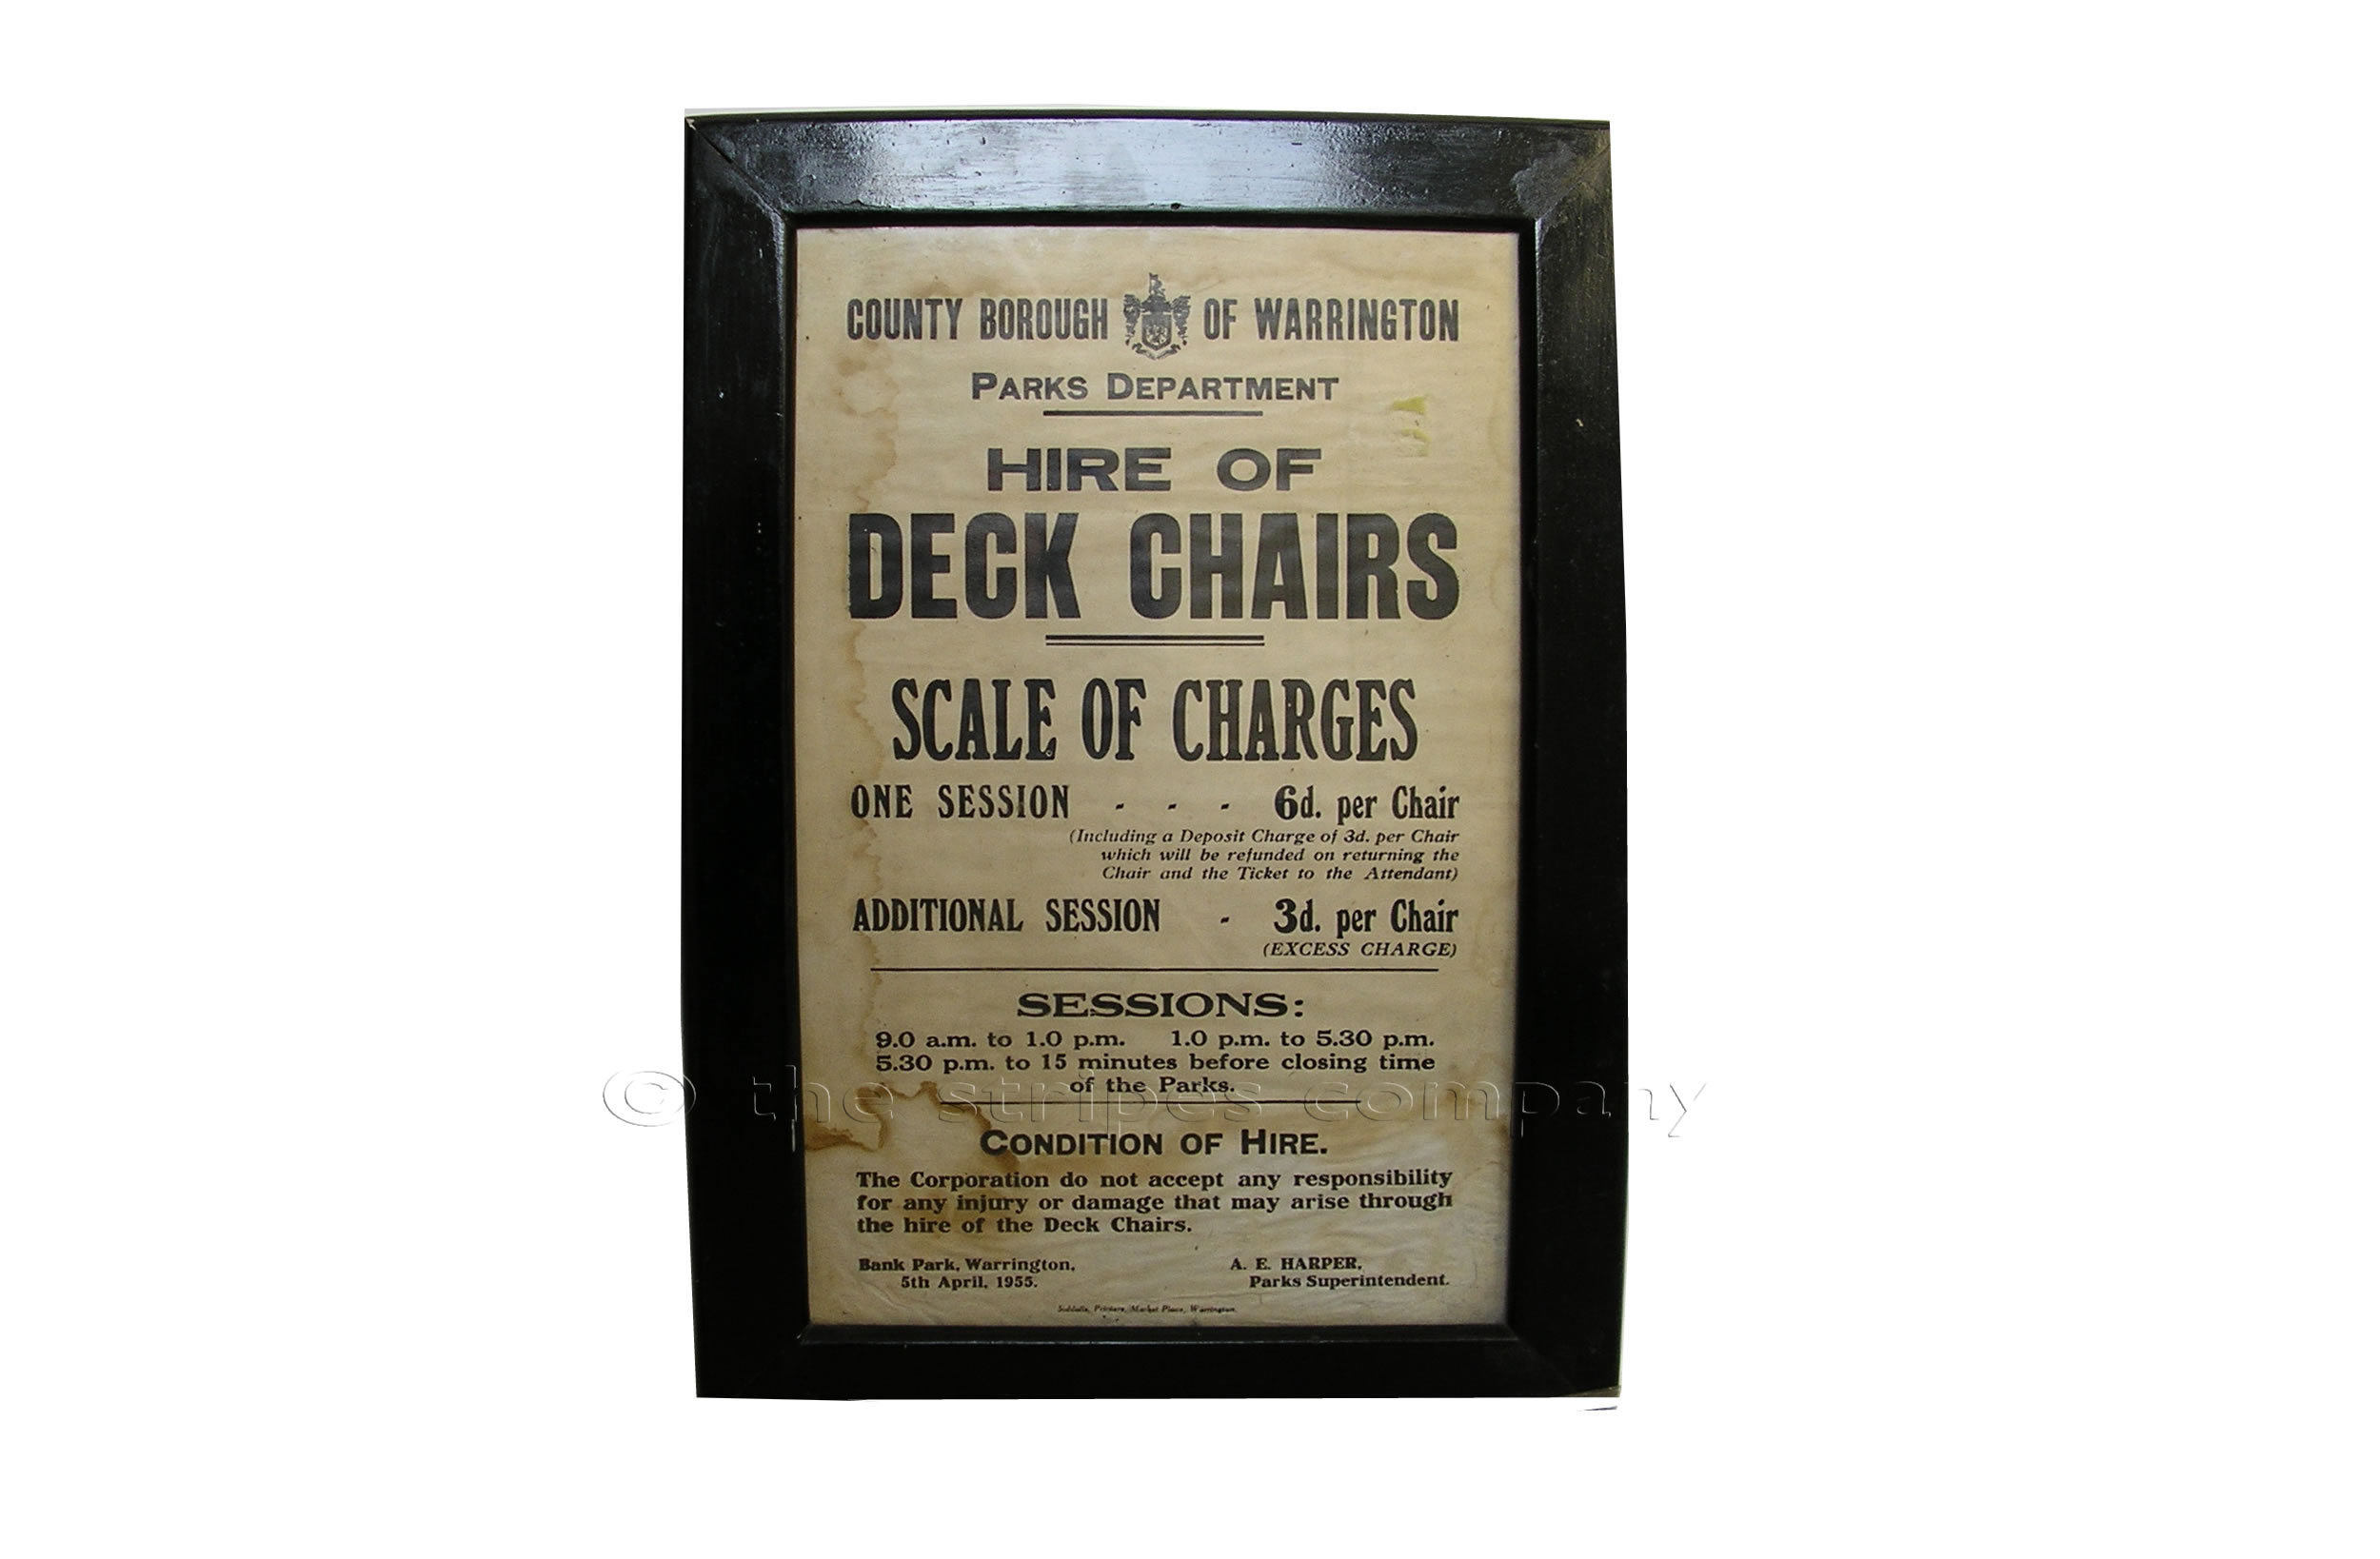 Deckchair Posters| Deckchairs for Hire Poster| Hire of Deck Chairs Posters